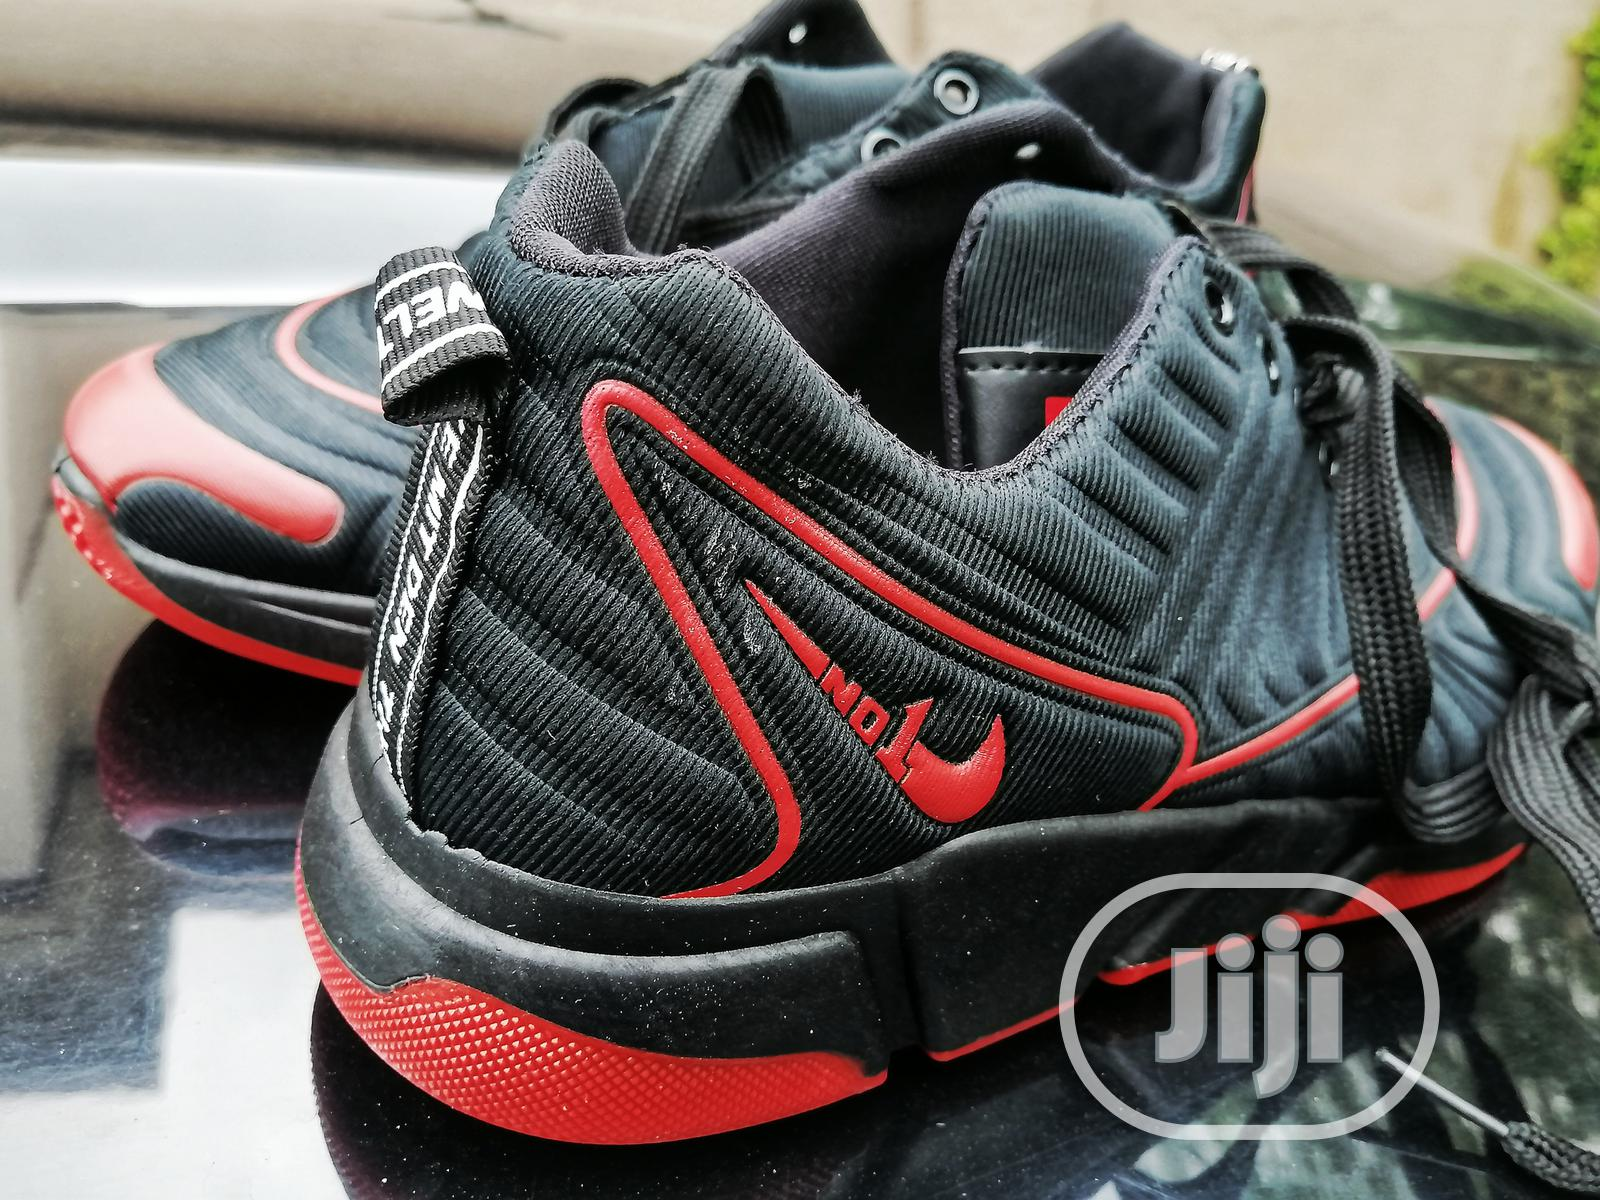 Male Unisex Fashion Sneakers | Shoes for sale in Ikeja, Lagos State, Nigeria